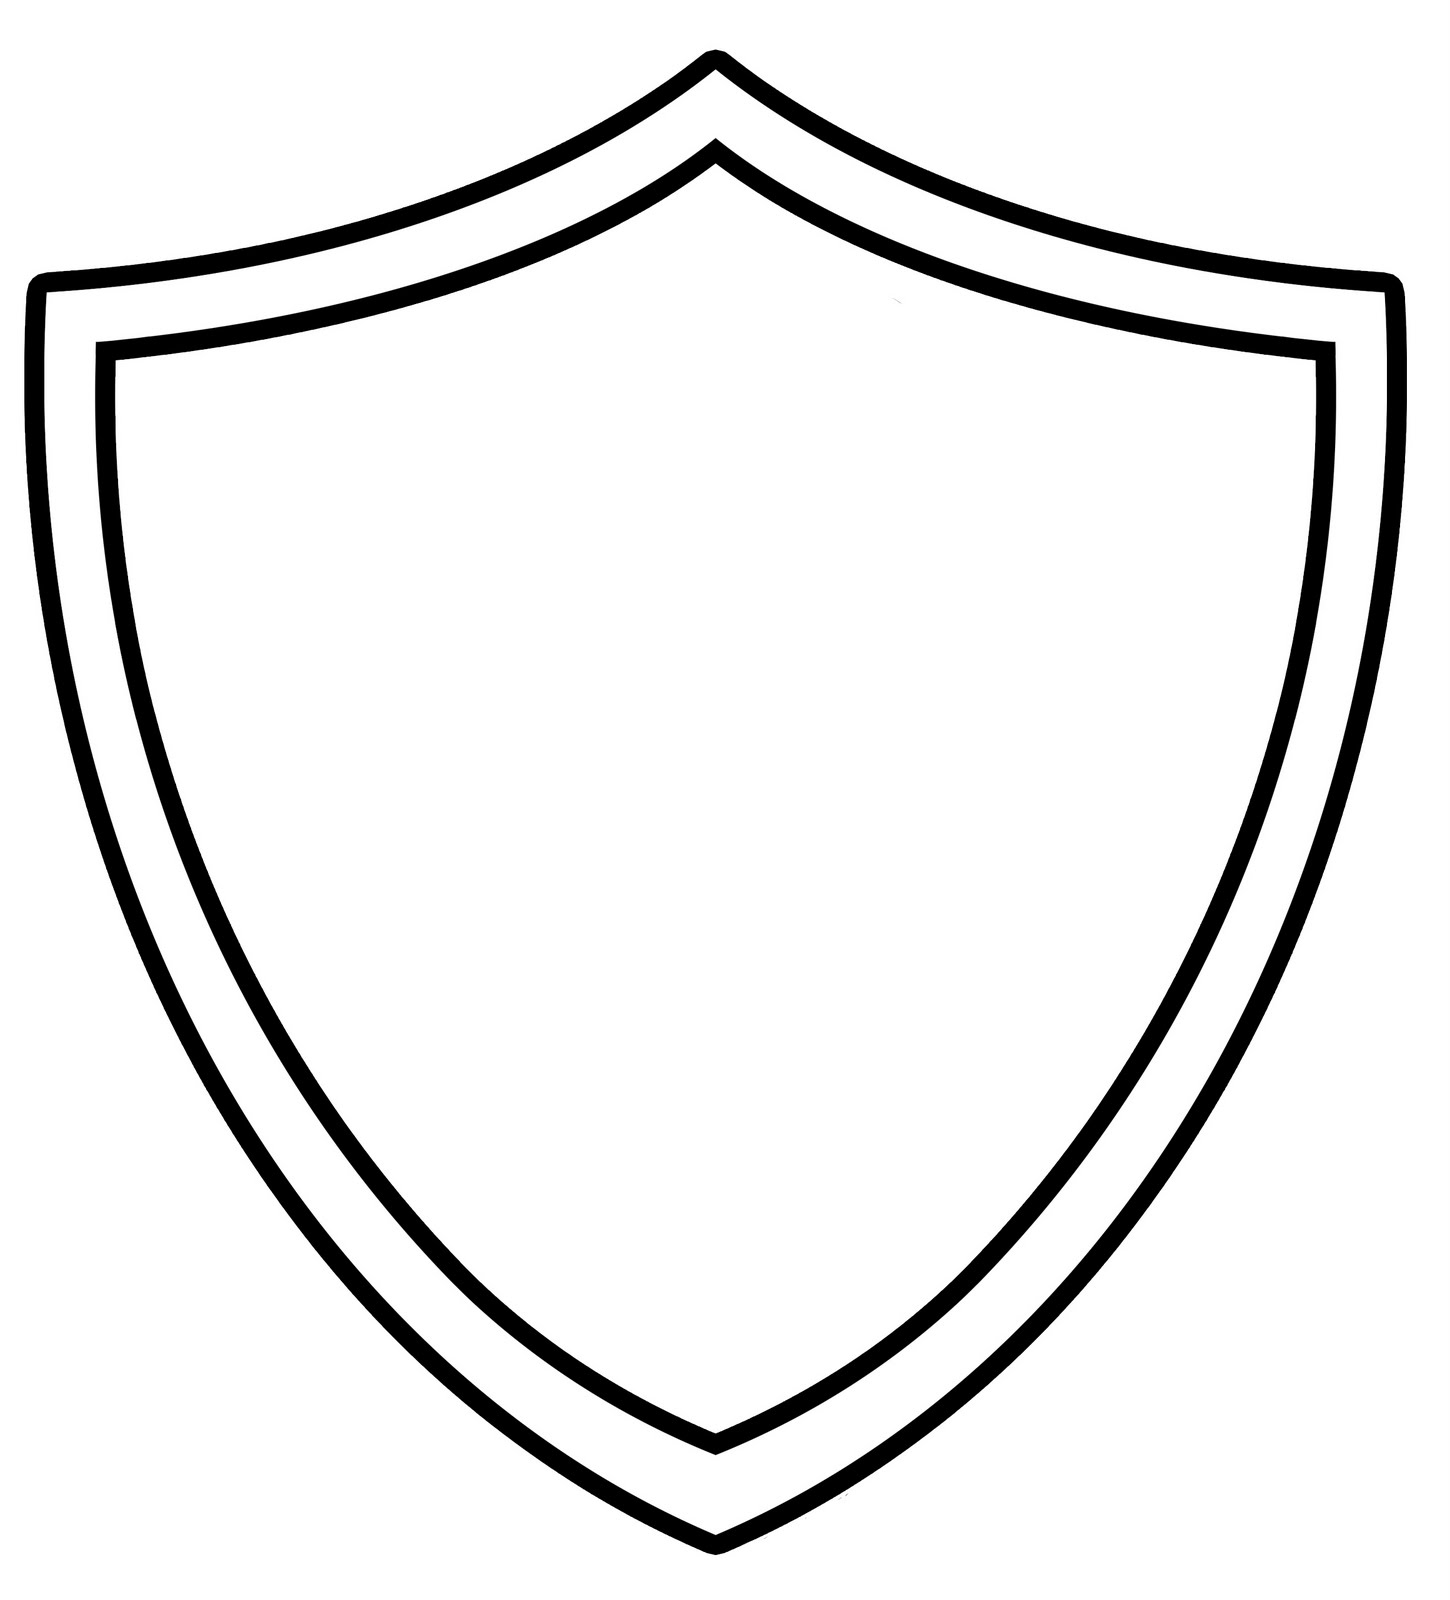 jpg library stock Free black and white. Shield clipart